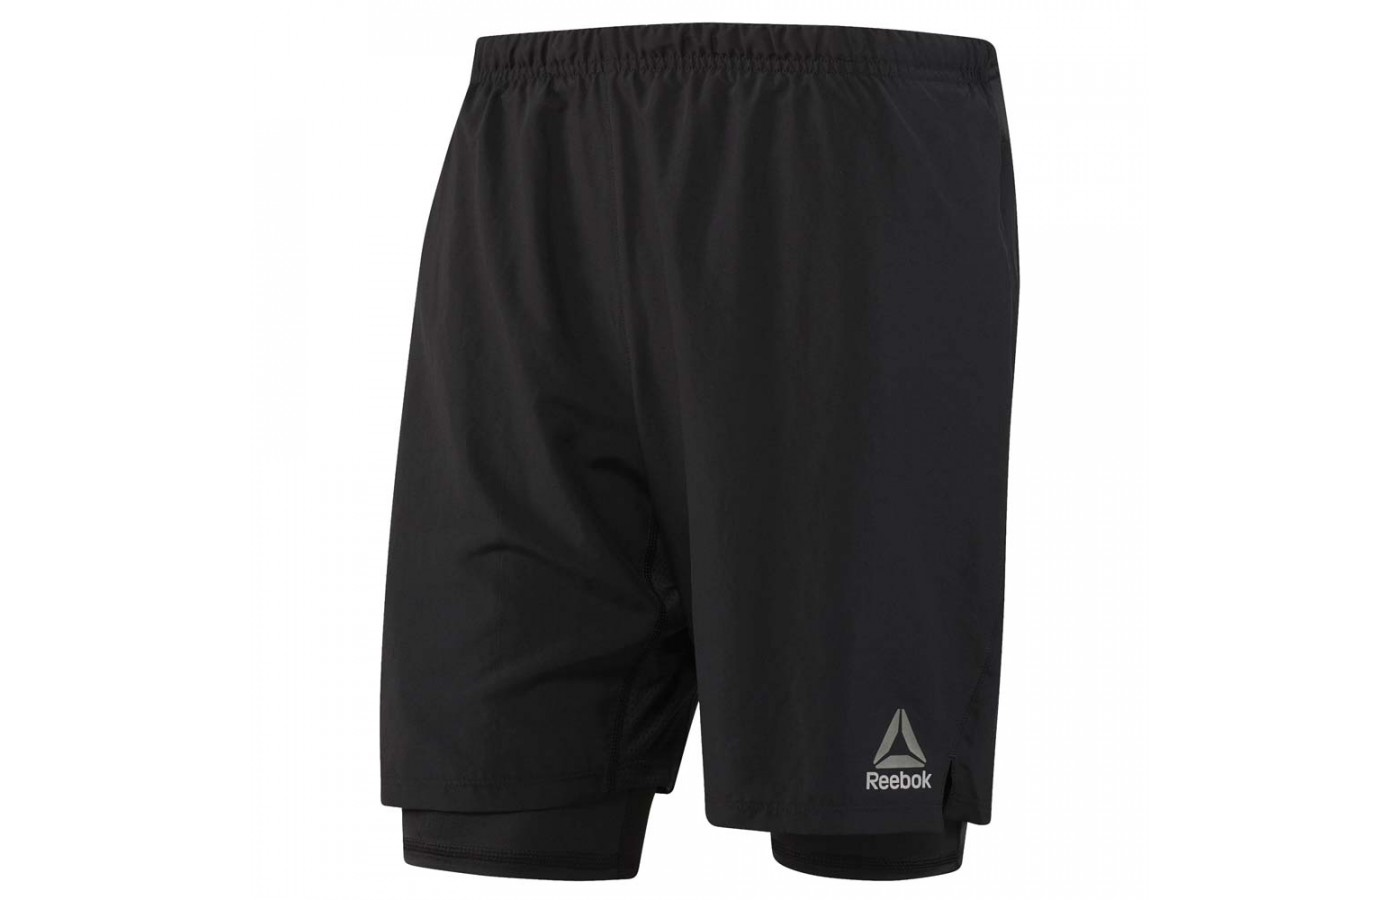 Here you can see the longer liner of the Reebok One Series 2-in-1 Short.